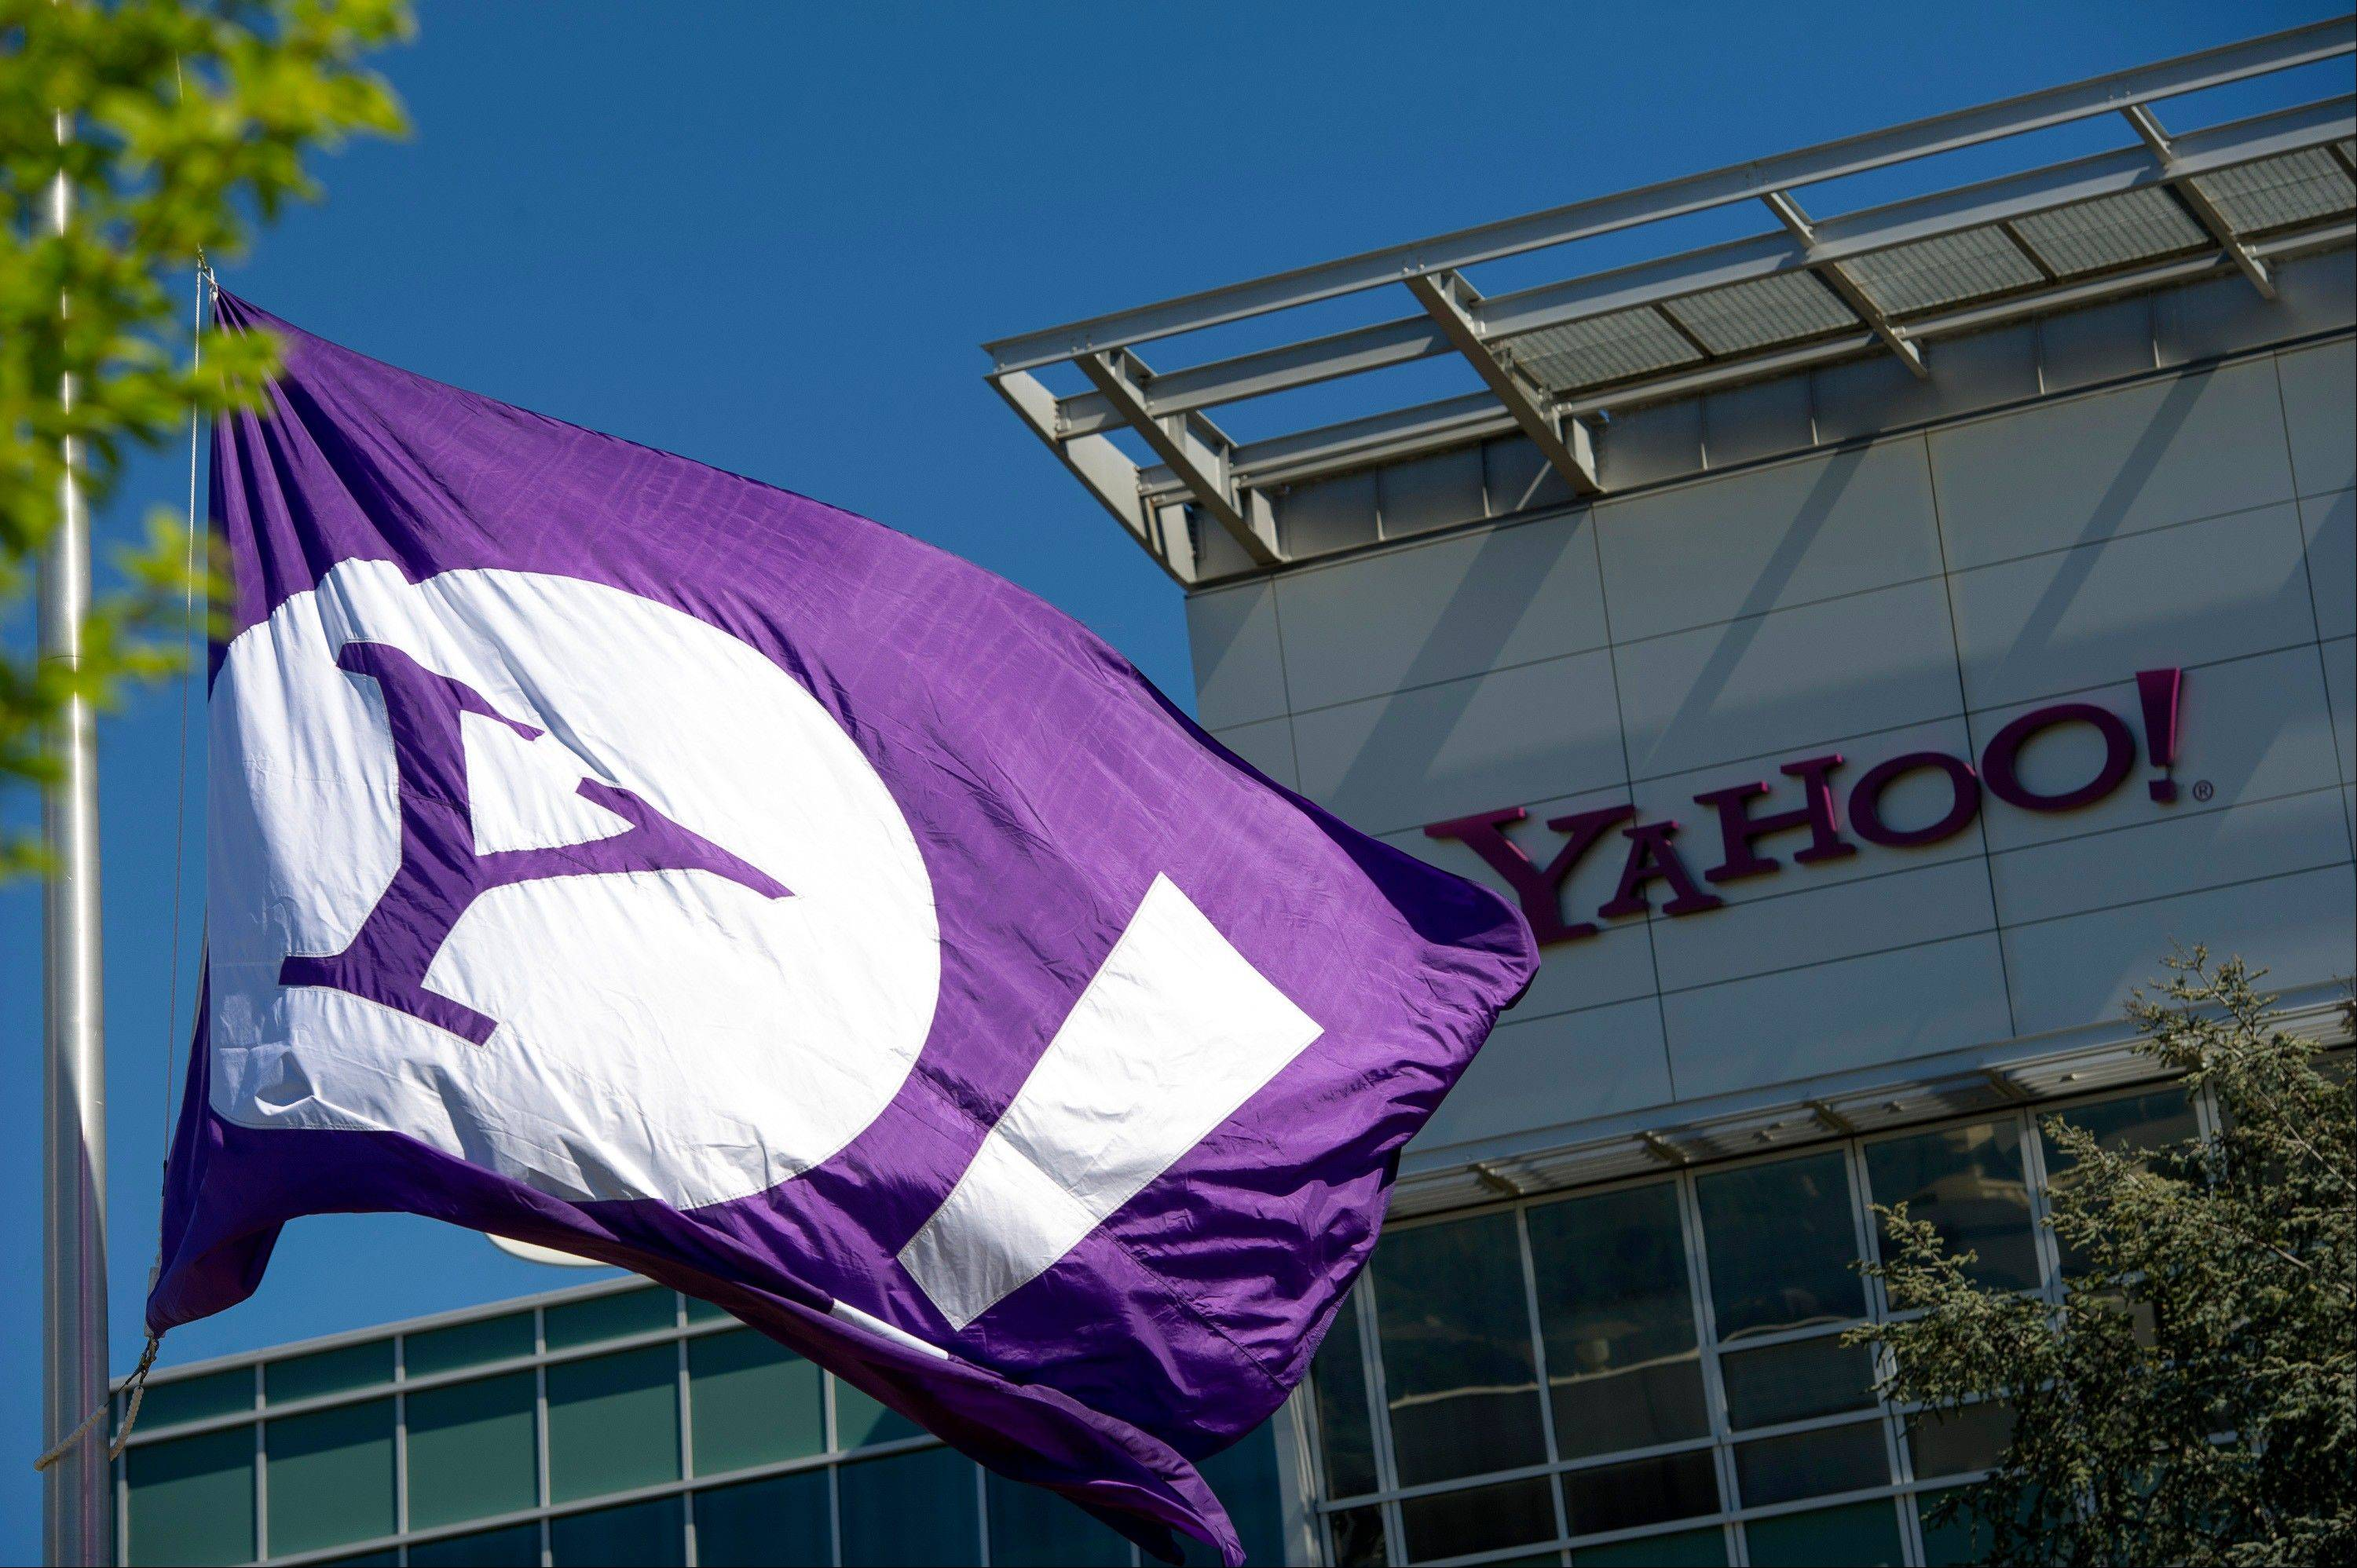 The Yahoo! Inc. logo is displayed on a flag flying at the company's headquarters in Sunnyvale, California, U.S., on Tuesday, April 16, 2013. Yahoo! Inc., the biggest U.S. Web portal, forecast sales that fell short of analysts� estimates as it continued to lose advertisers to Google Inc. and Facebook Inc. Photographer: David Paul Morris/Bloomberg